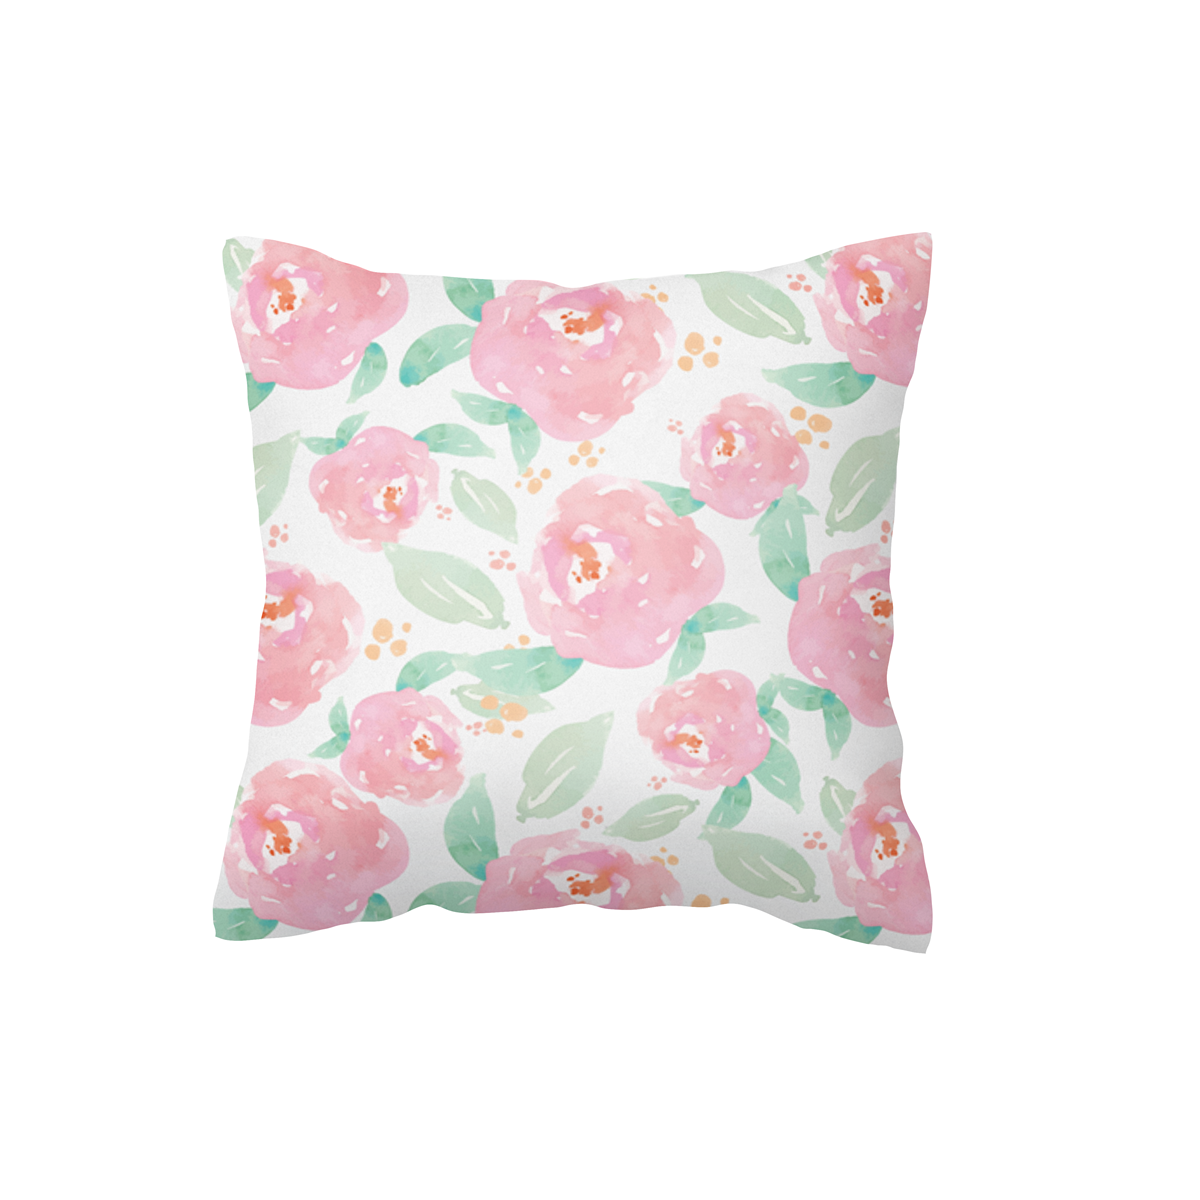 Watercolour Roses Scatter Cushion Cover